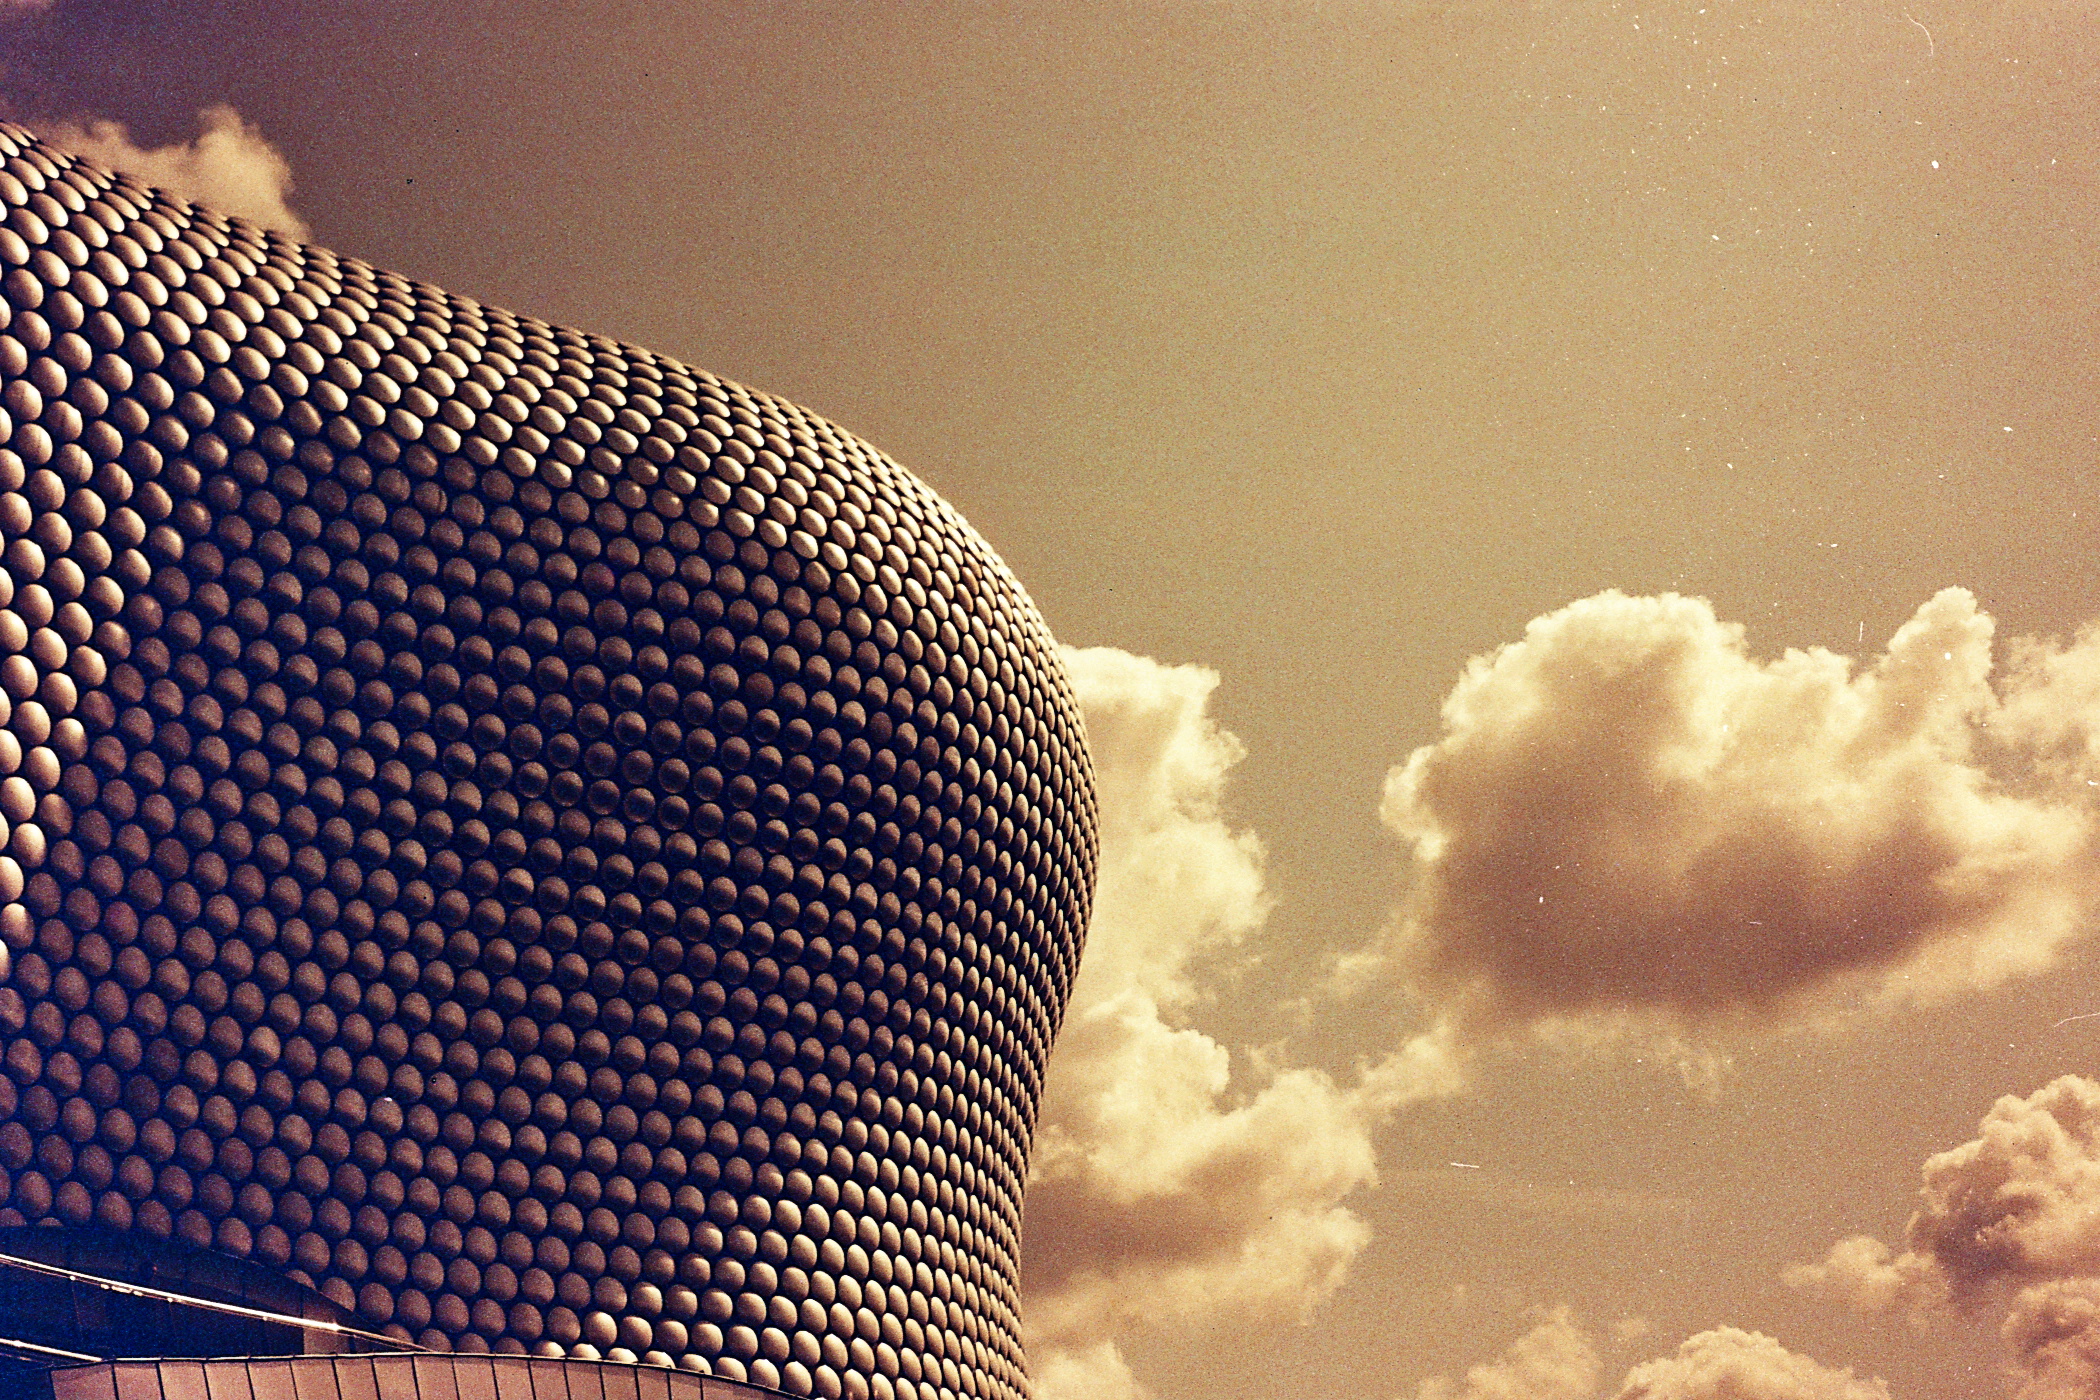 35mm Redscale Bull Ring Birmingham